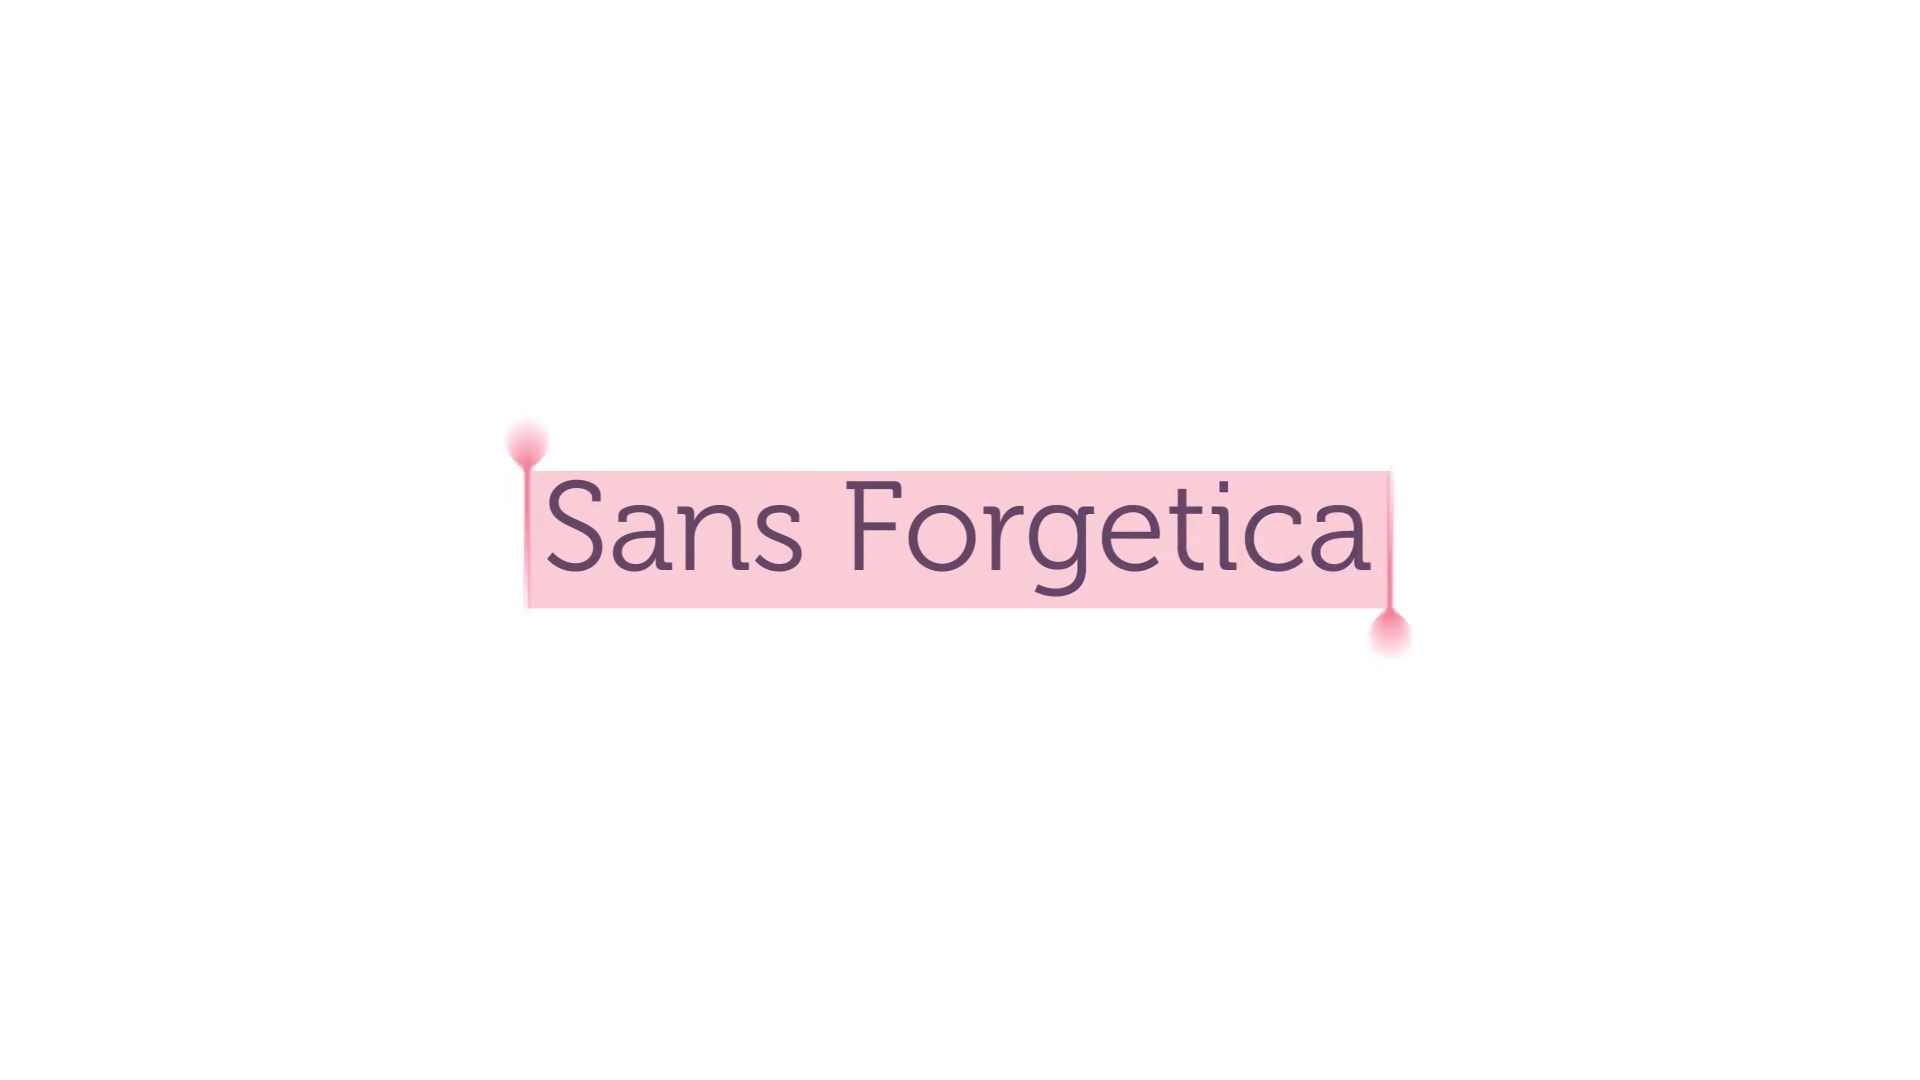 Font 'Sans forgetica' is made to help you memorize things